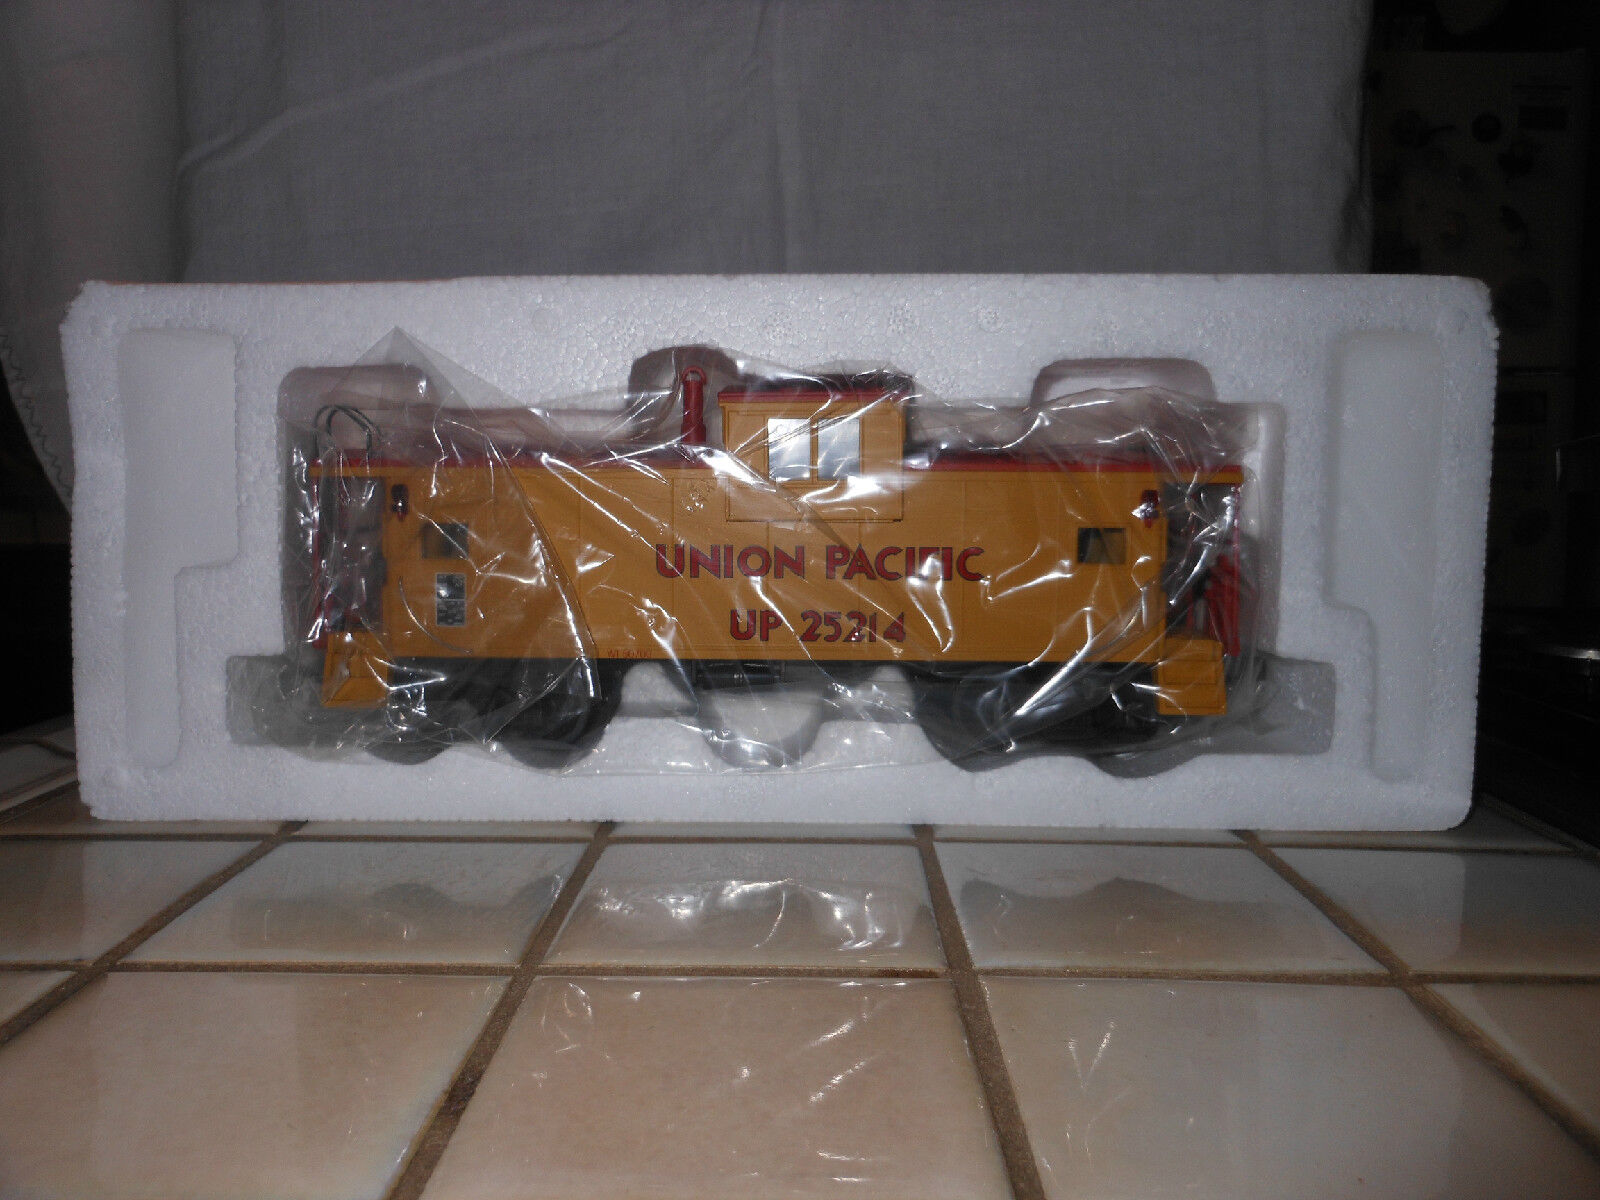 MTH PREMIER 20-9100L UNION PAC EXTENDED VISION CABOOSE TRAIN CAR NIB RATED C9